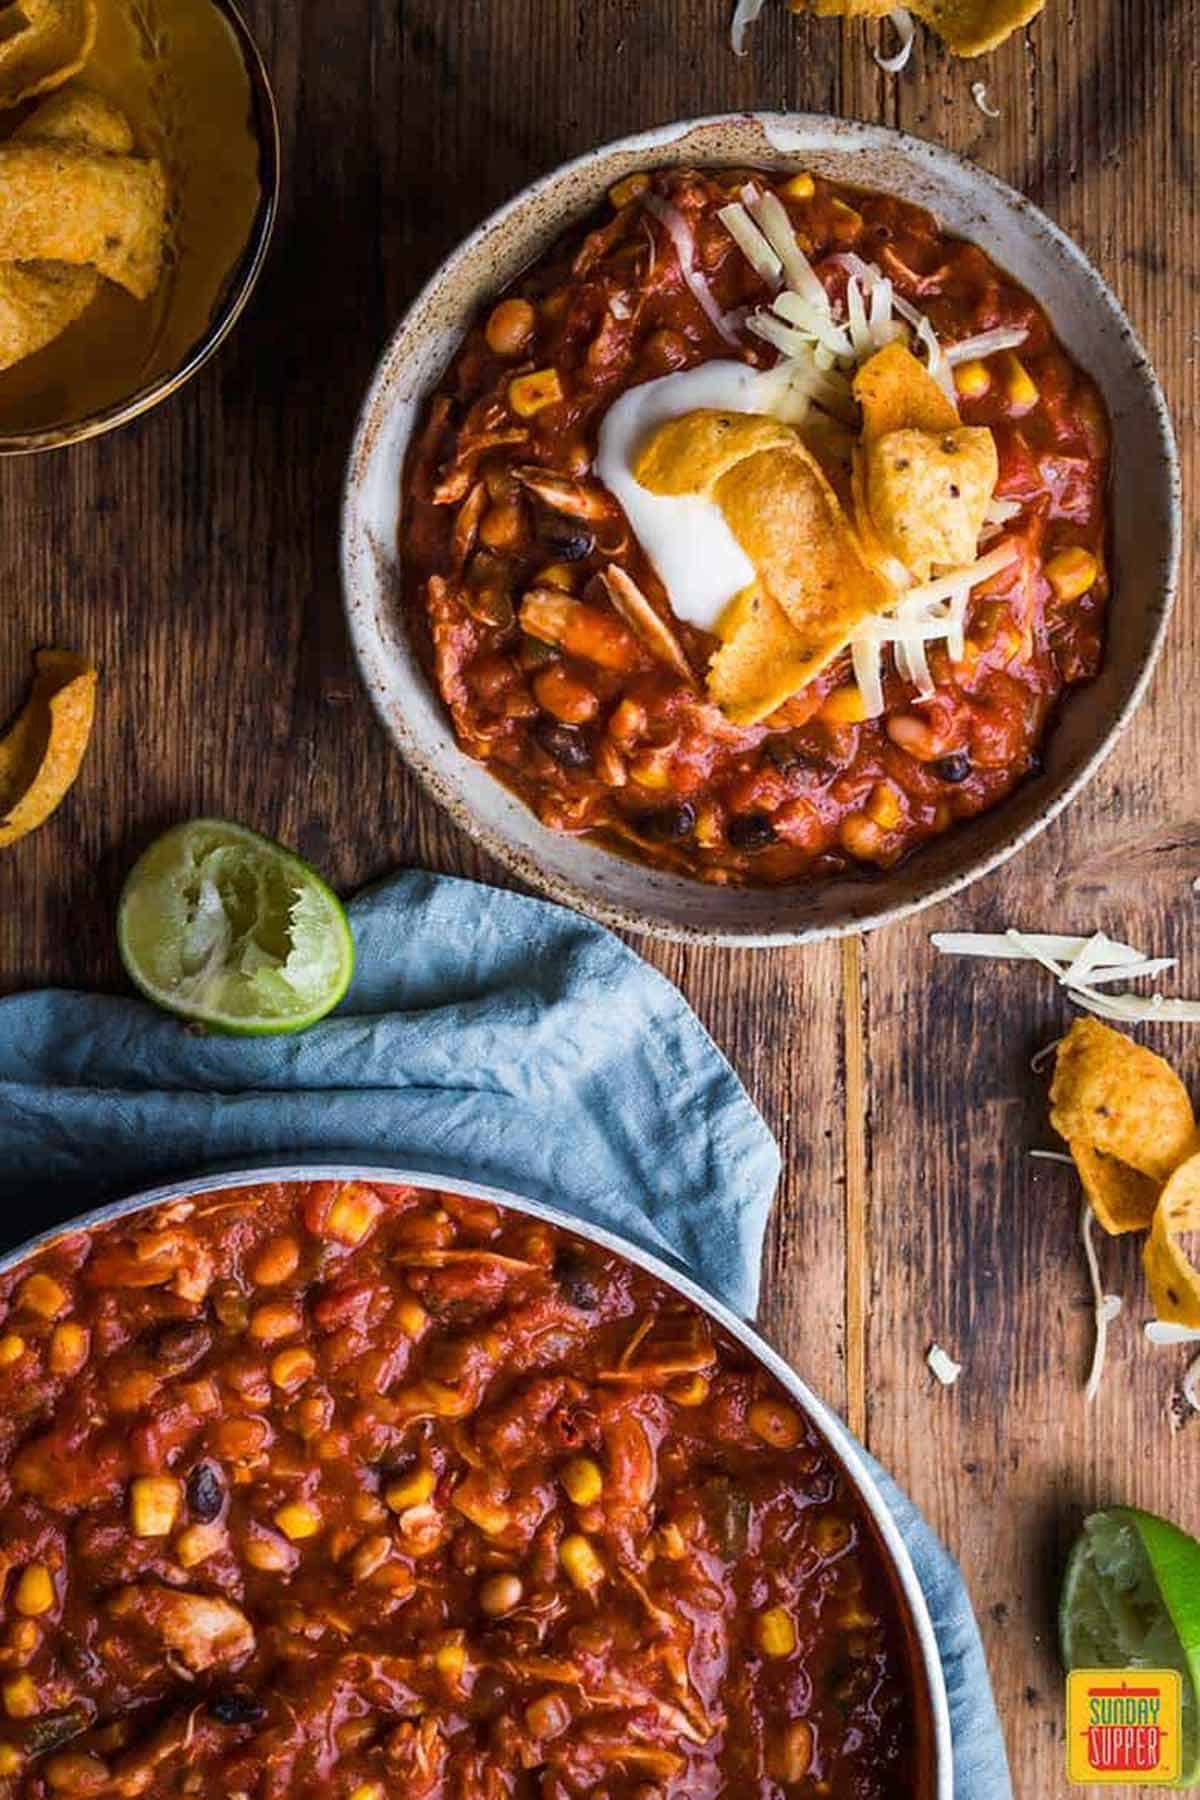 A bowl of chicken chili next to the skillet of chili